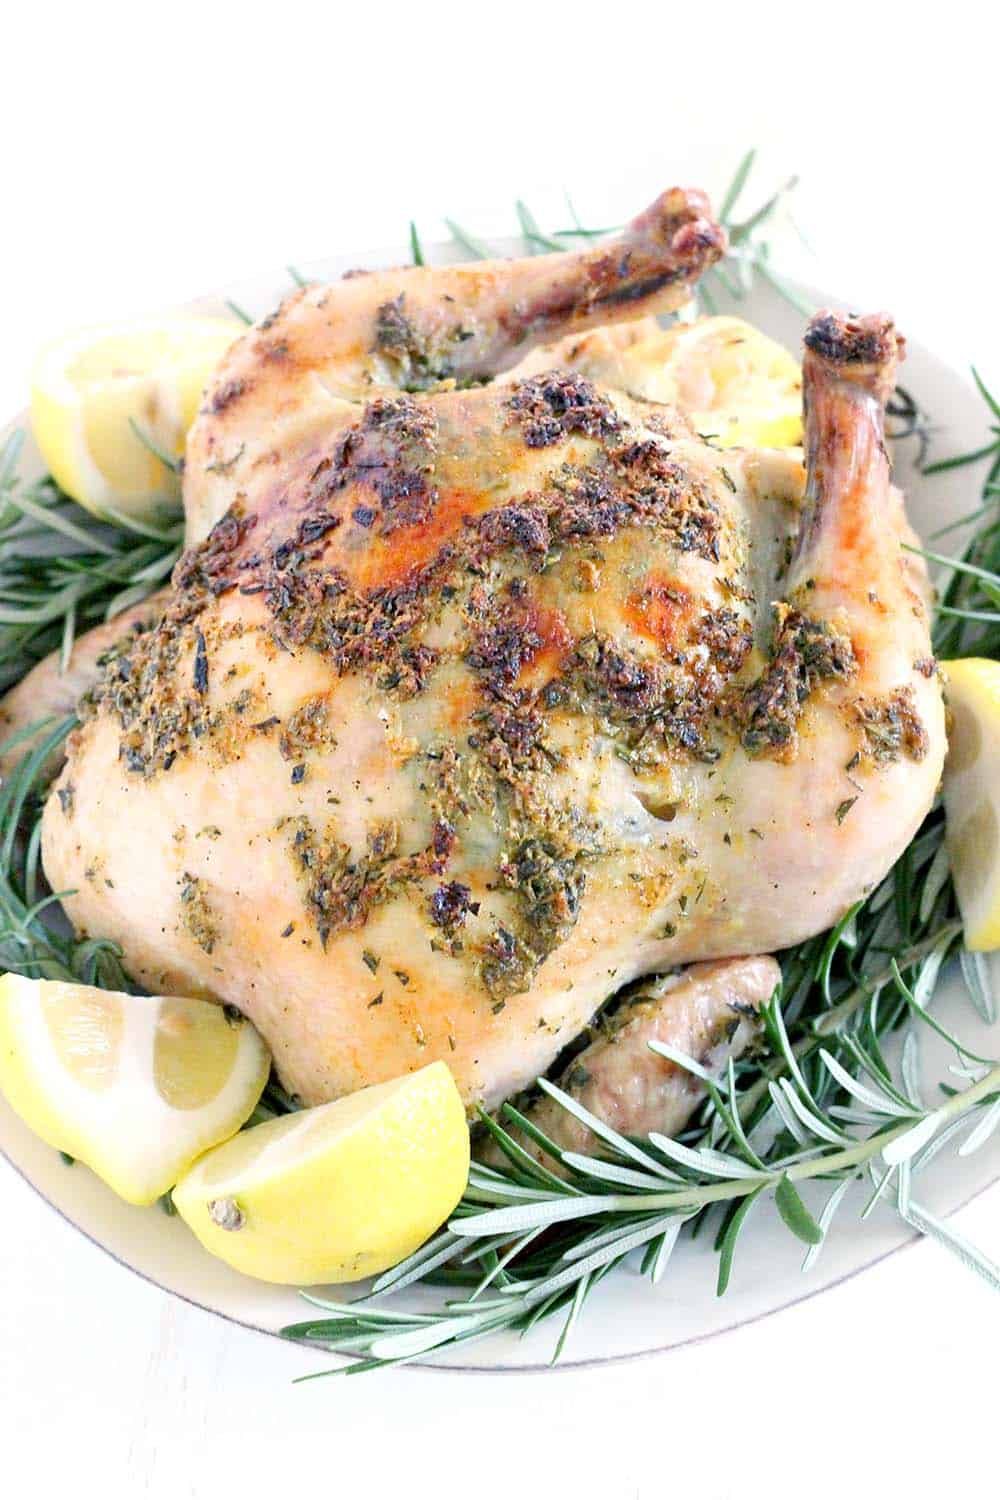 This is the BEST roast chicken recipe EVER! It's cooked in a dutch oven, ensuring crispy skin and juicy meat, and BURSTING with fresh flavor from tons of lemon, rosemary, and garlic. It's easy to make with only six ingredients, and ever single part of each ingredient is used, so there is no waste.